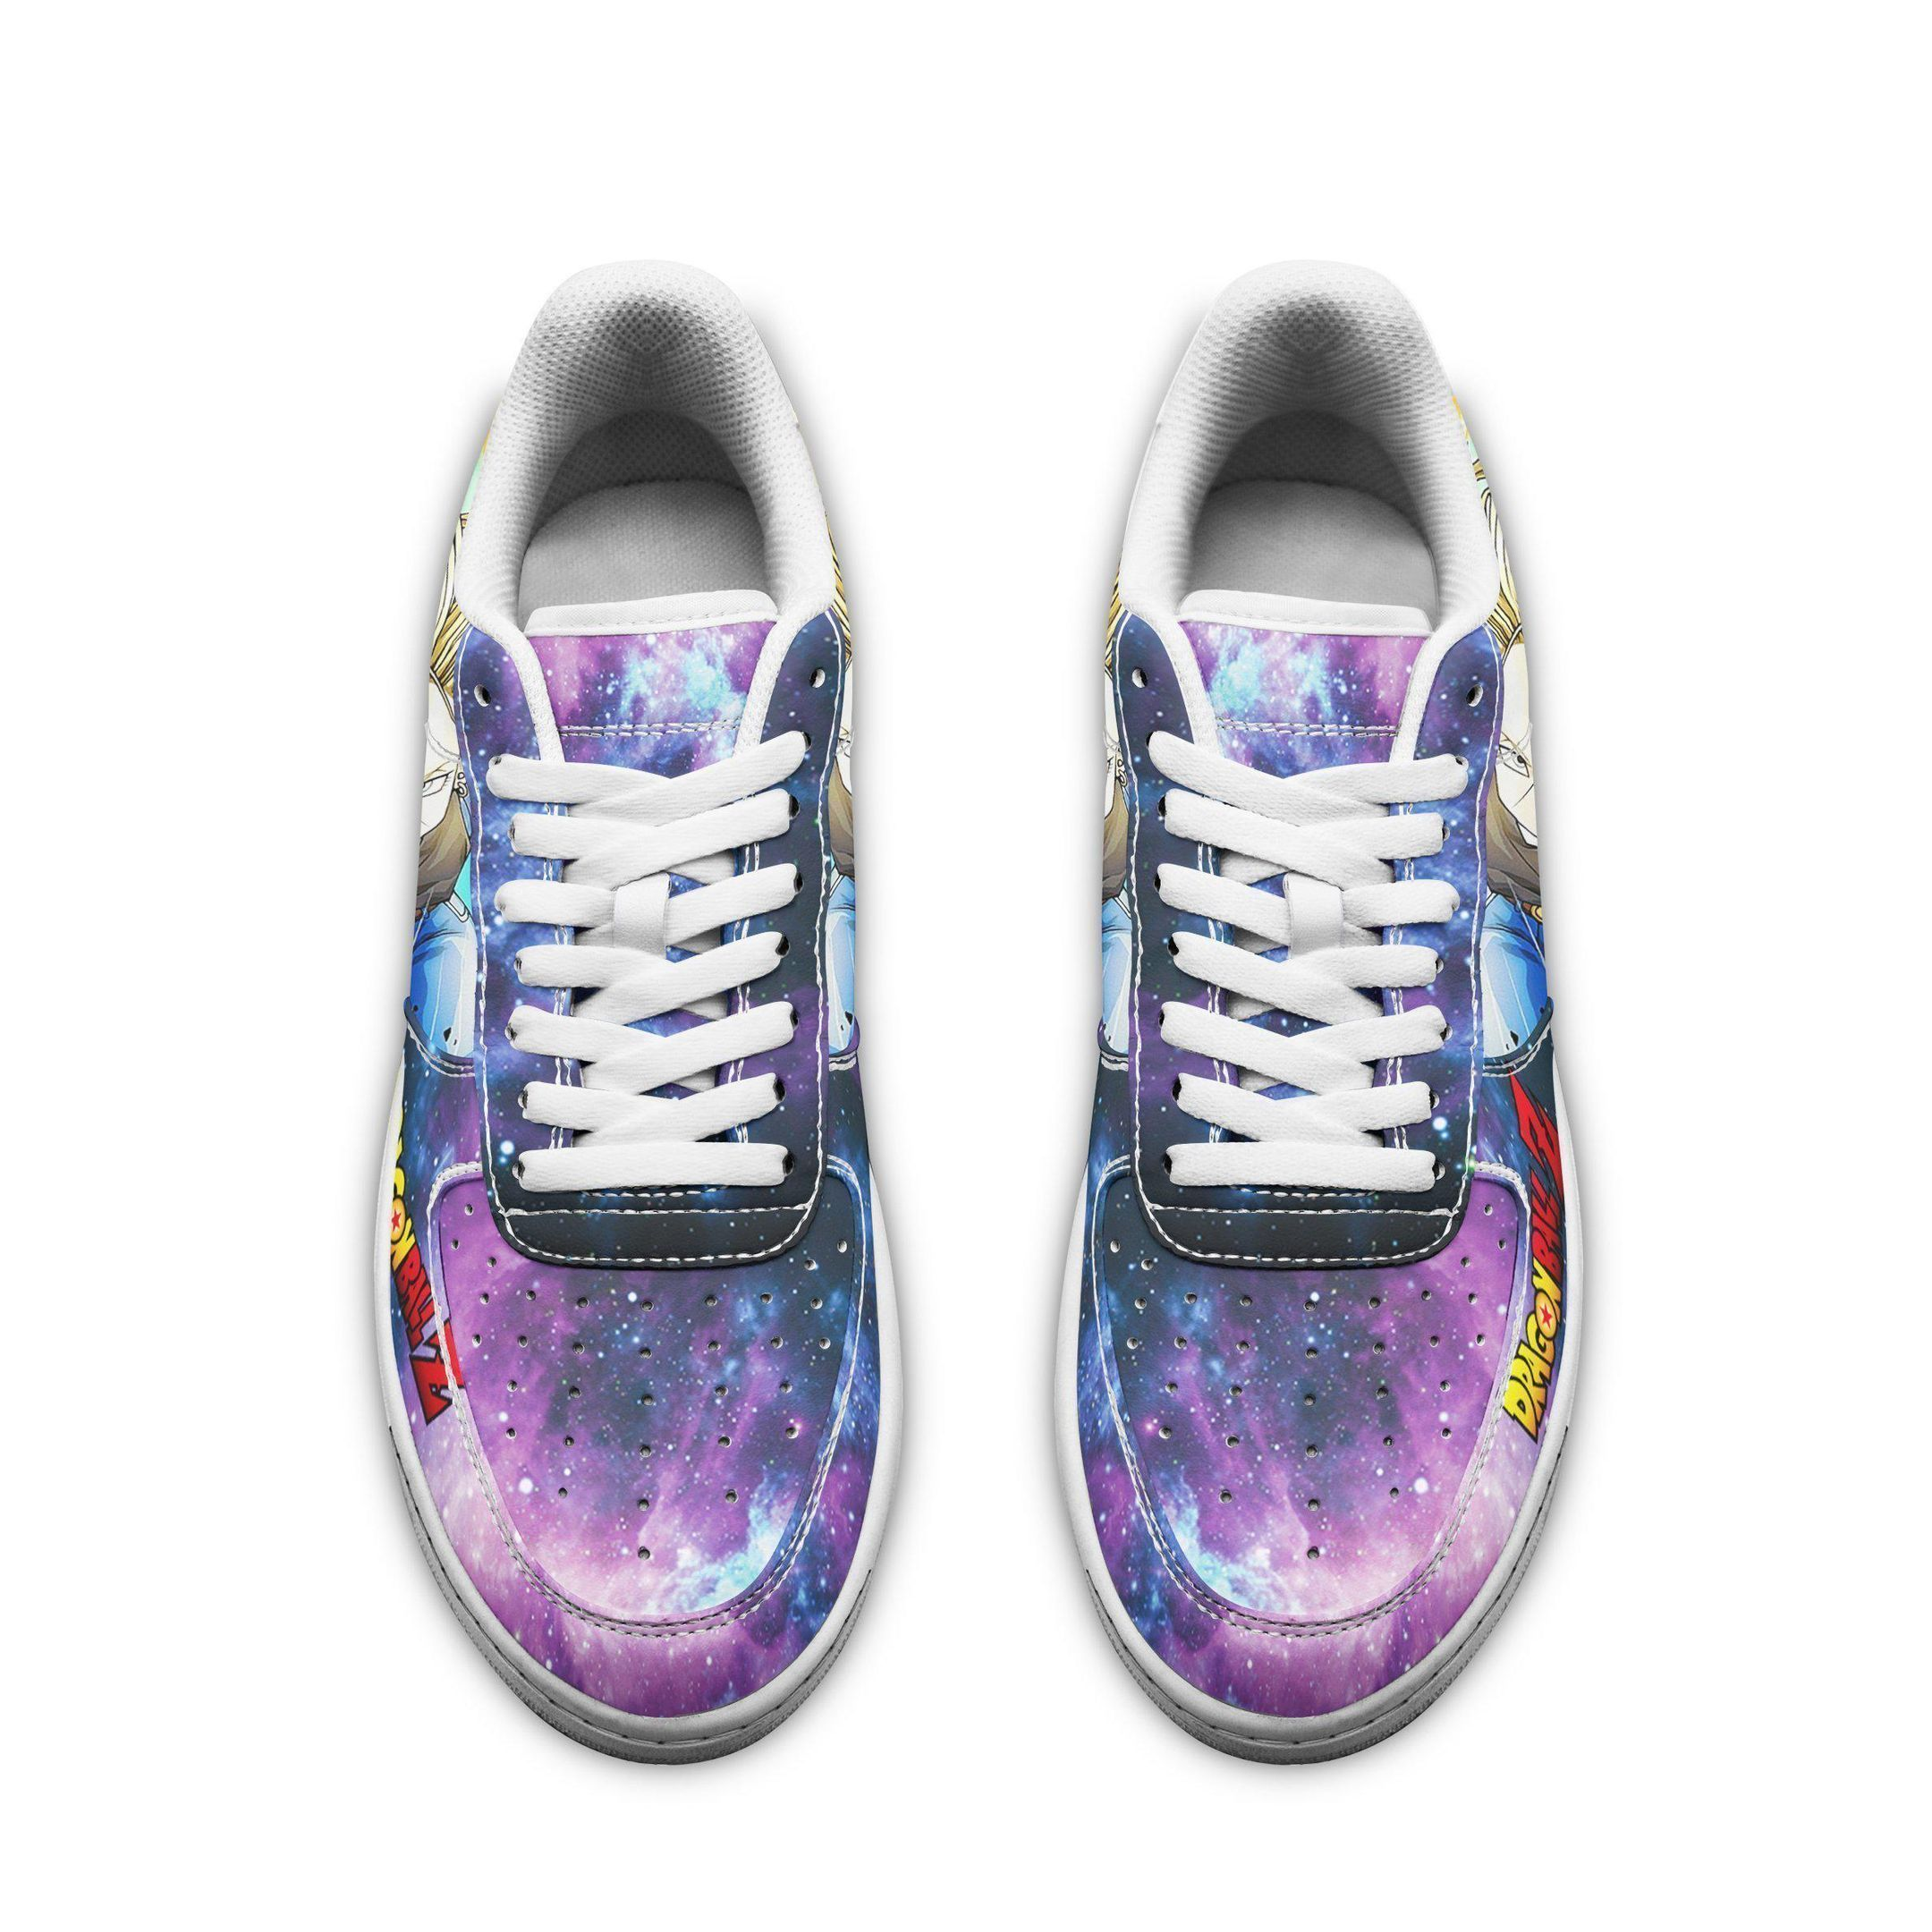 Android 18 Air Shoes Dragon Ball Z Anime Shoes Fan Gift GO1012